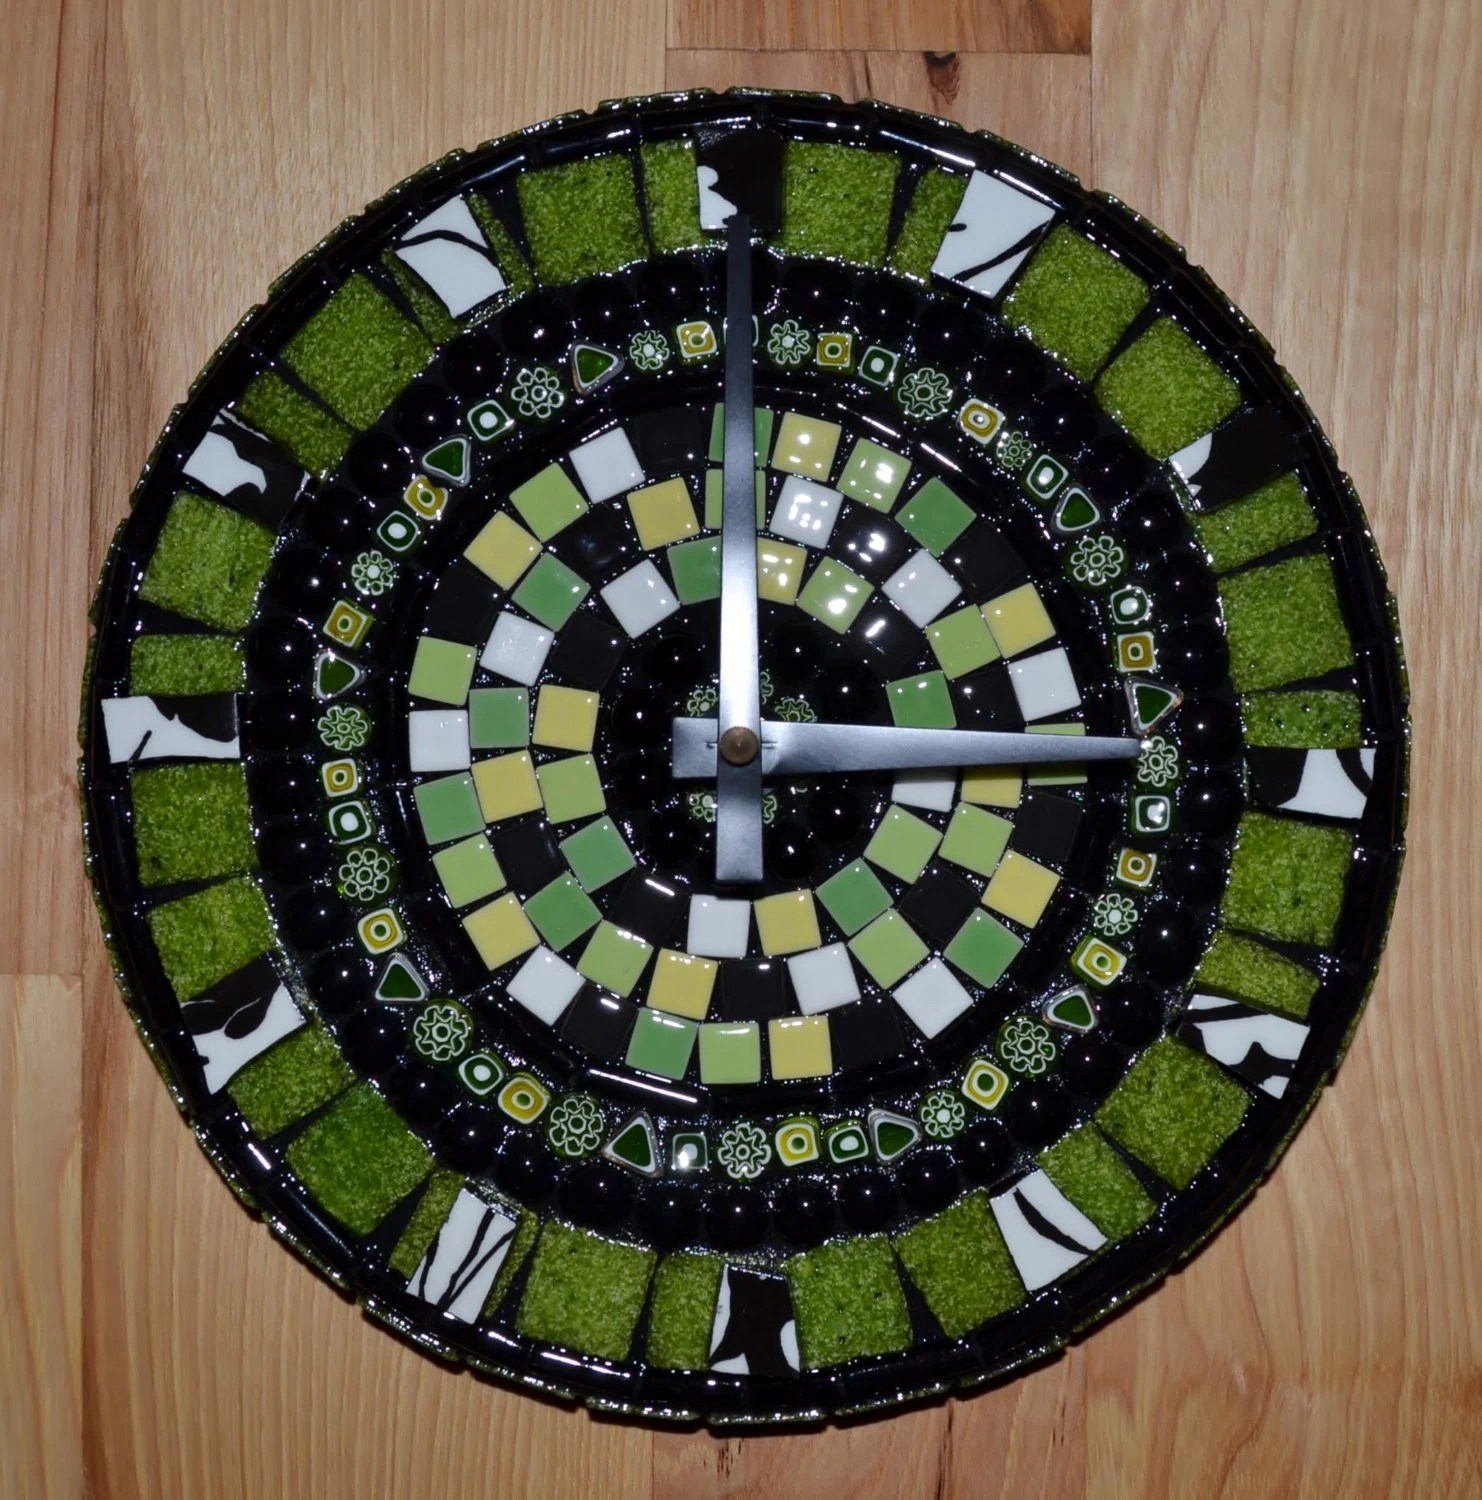 Green, Black, and White Round Mosaic Clock - FlutterflyMosaics